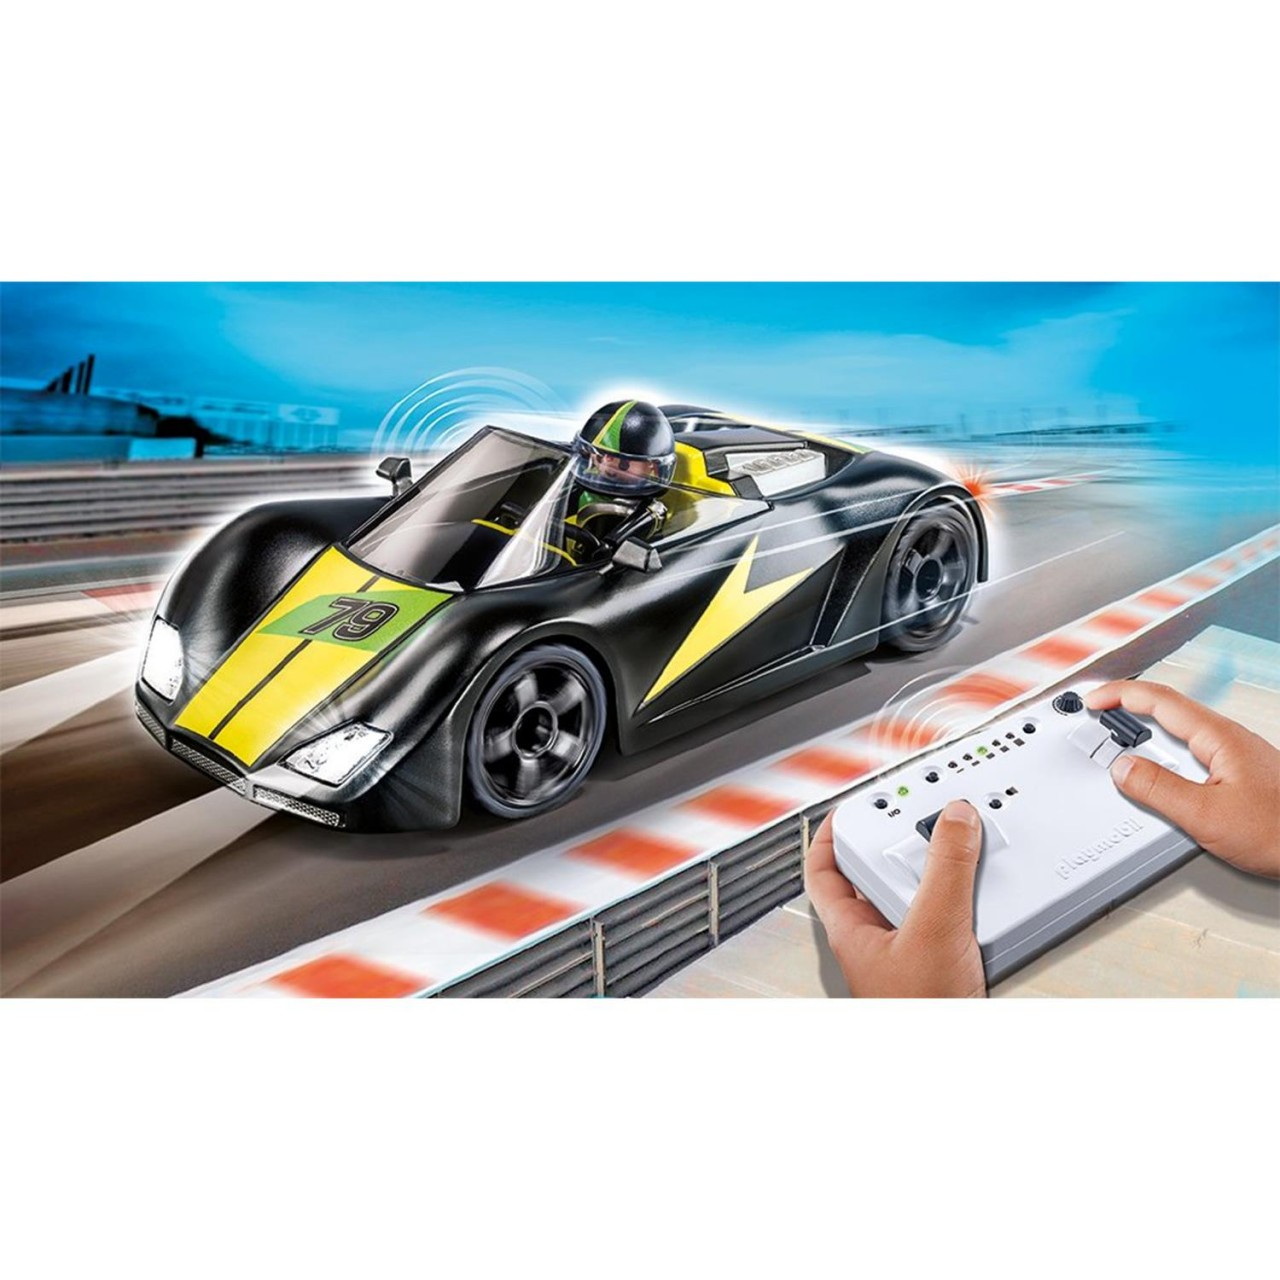 Playmobil 9089 RC-Supersport-Racer